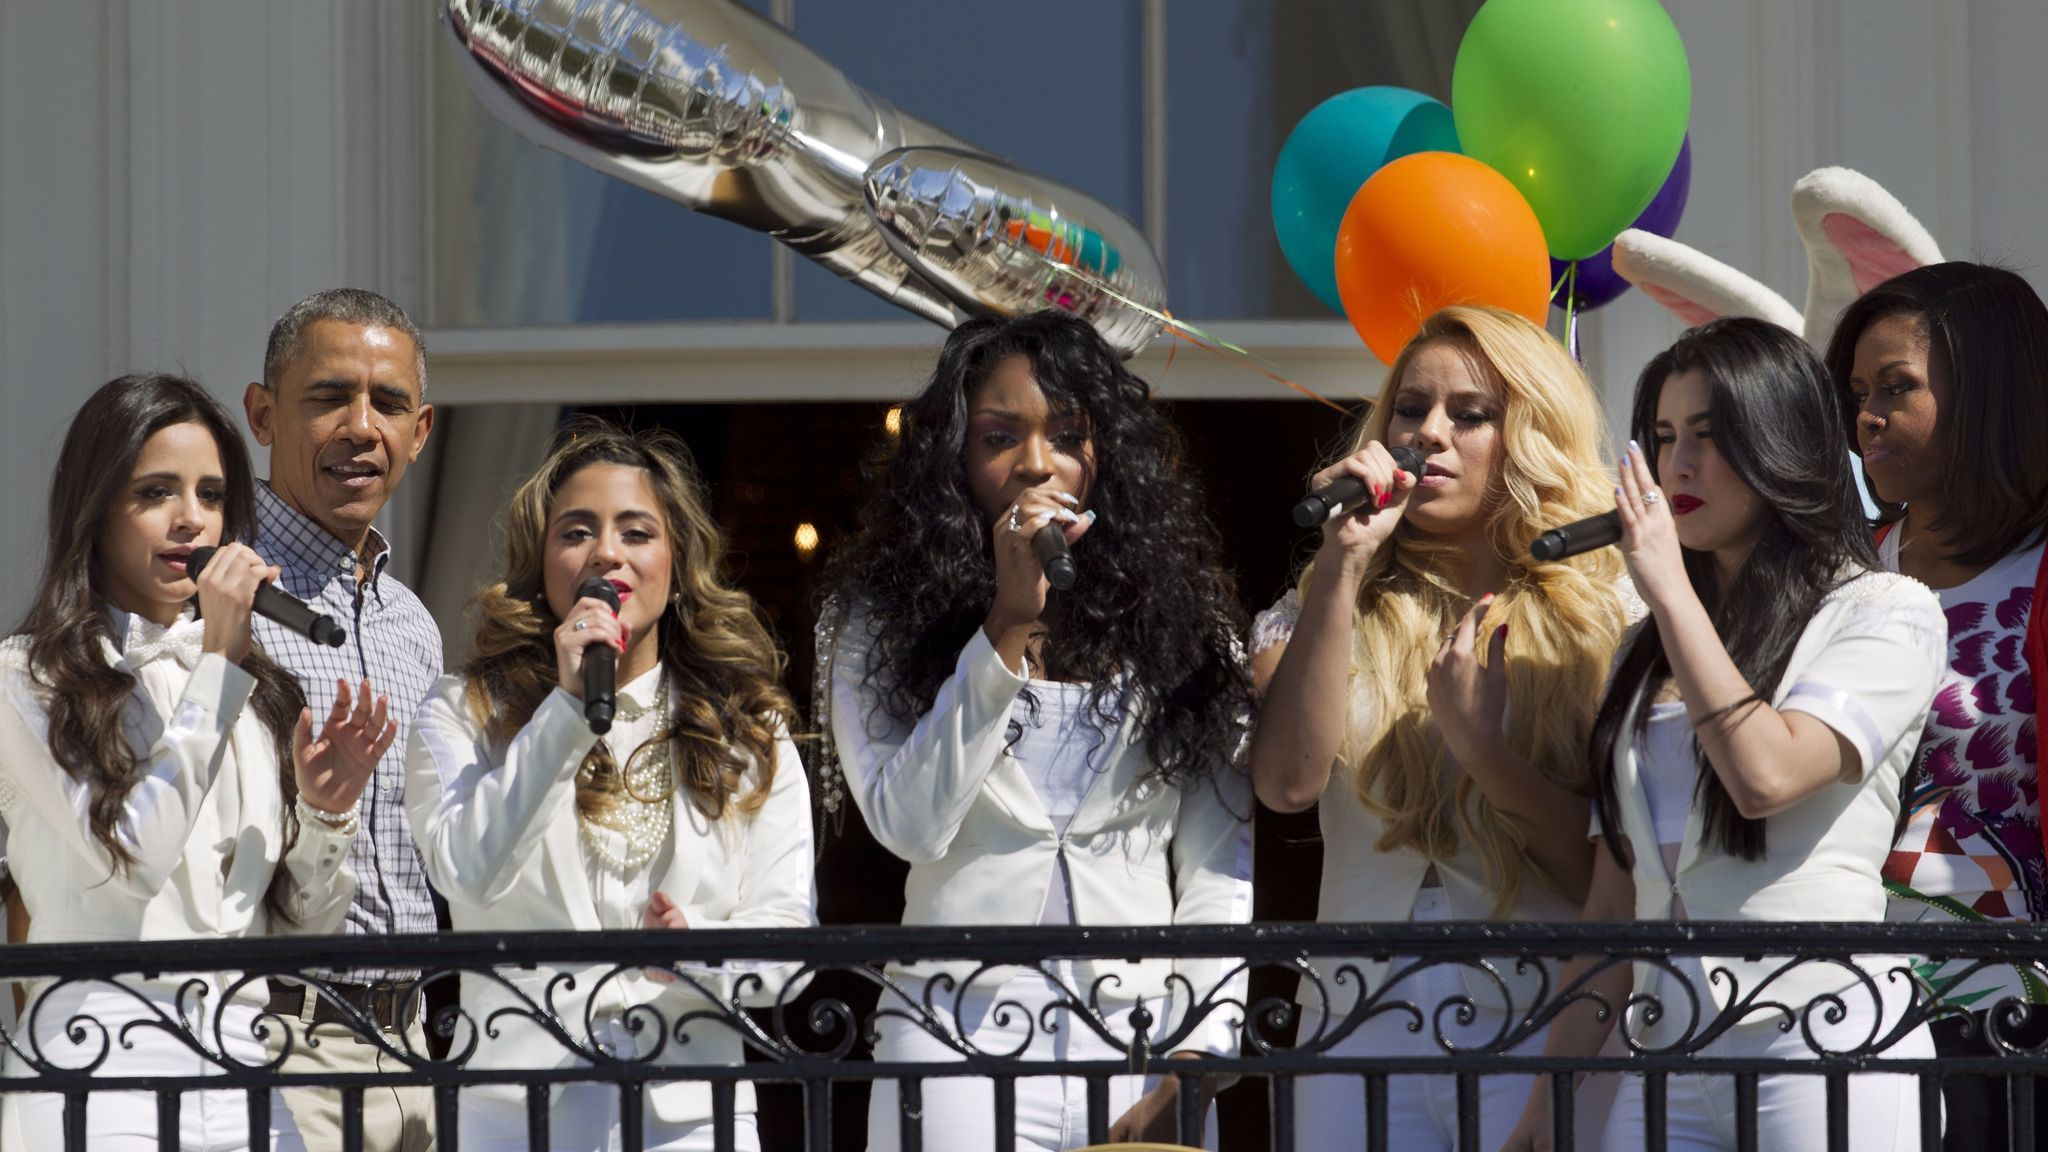 Then-President Obama and then-First Lady Michelle Obama, right, look on as Fifth Harmony performs at the White House in 2015. Camila Cabello (far left) exited in December 2016, amid the group's breakout year.